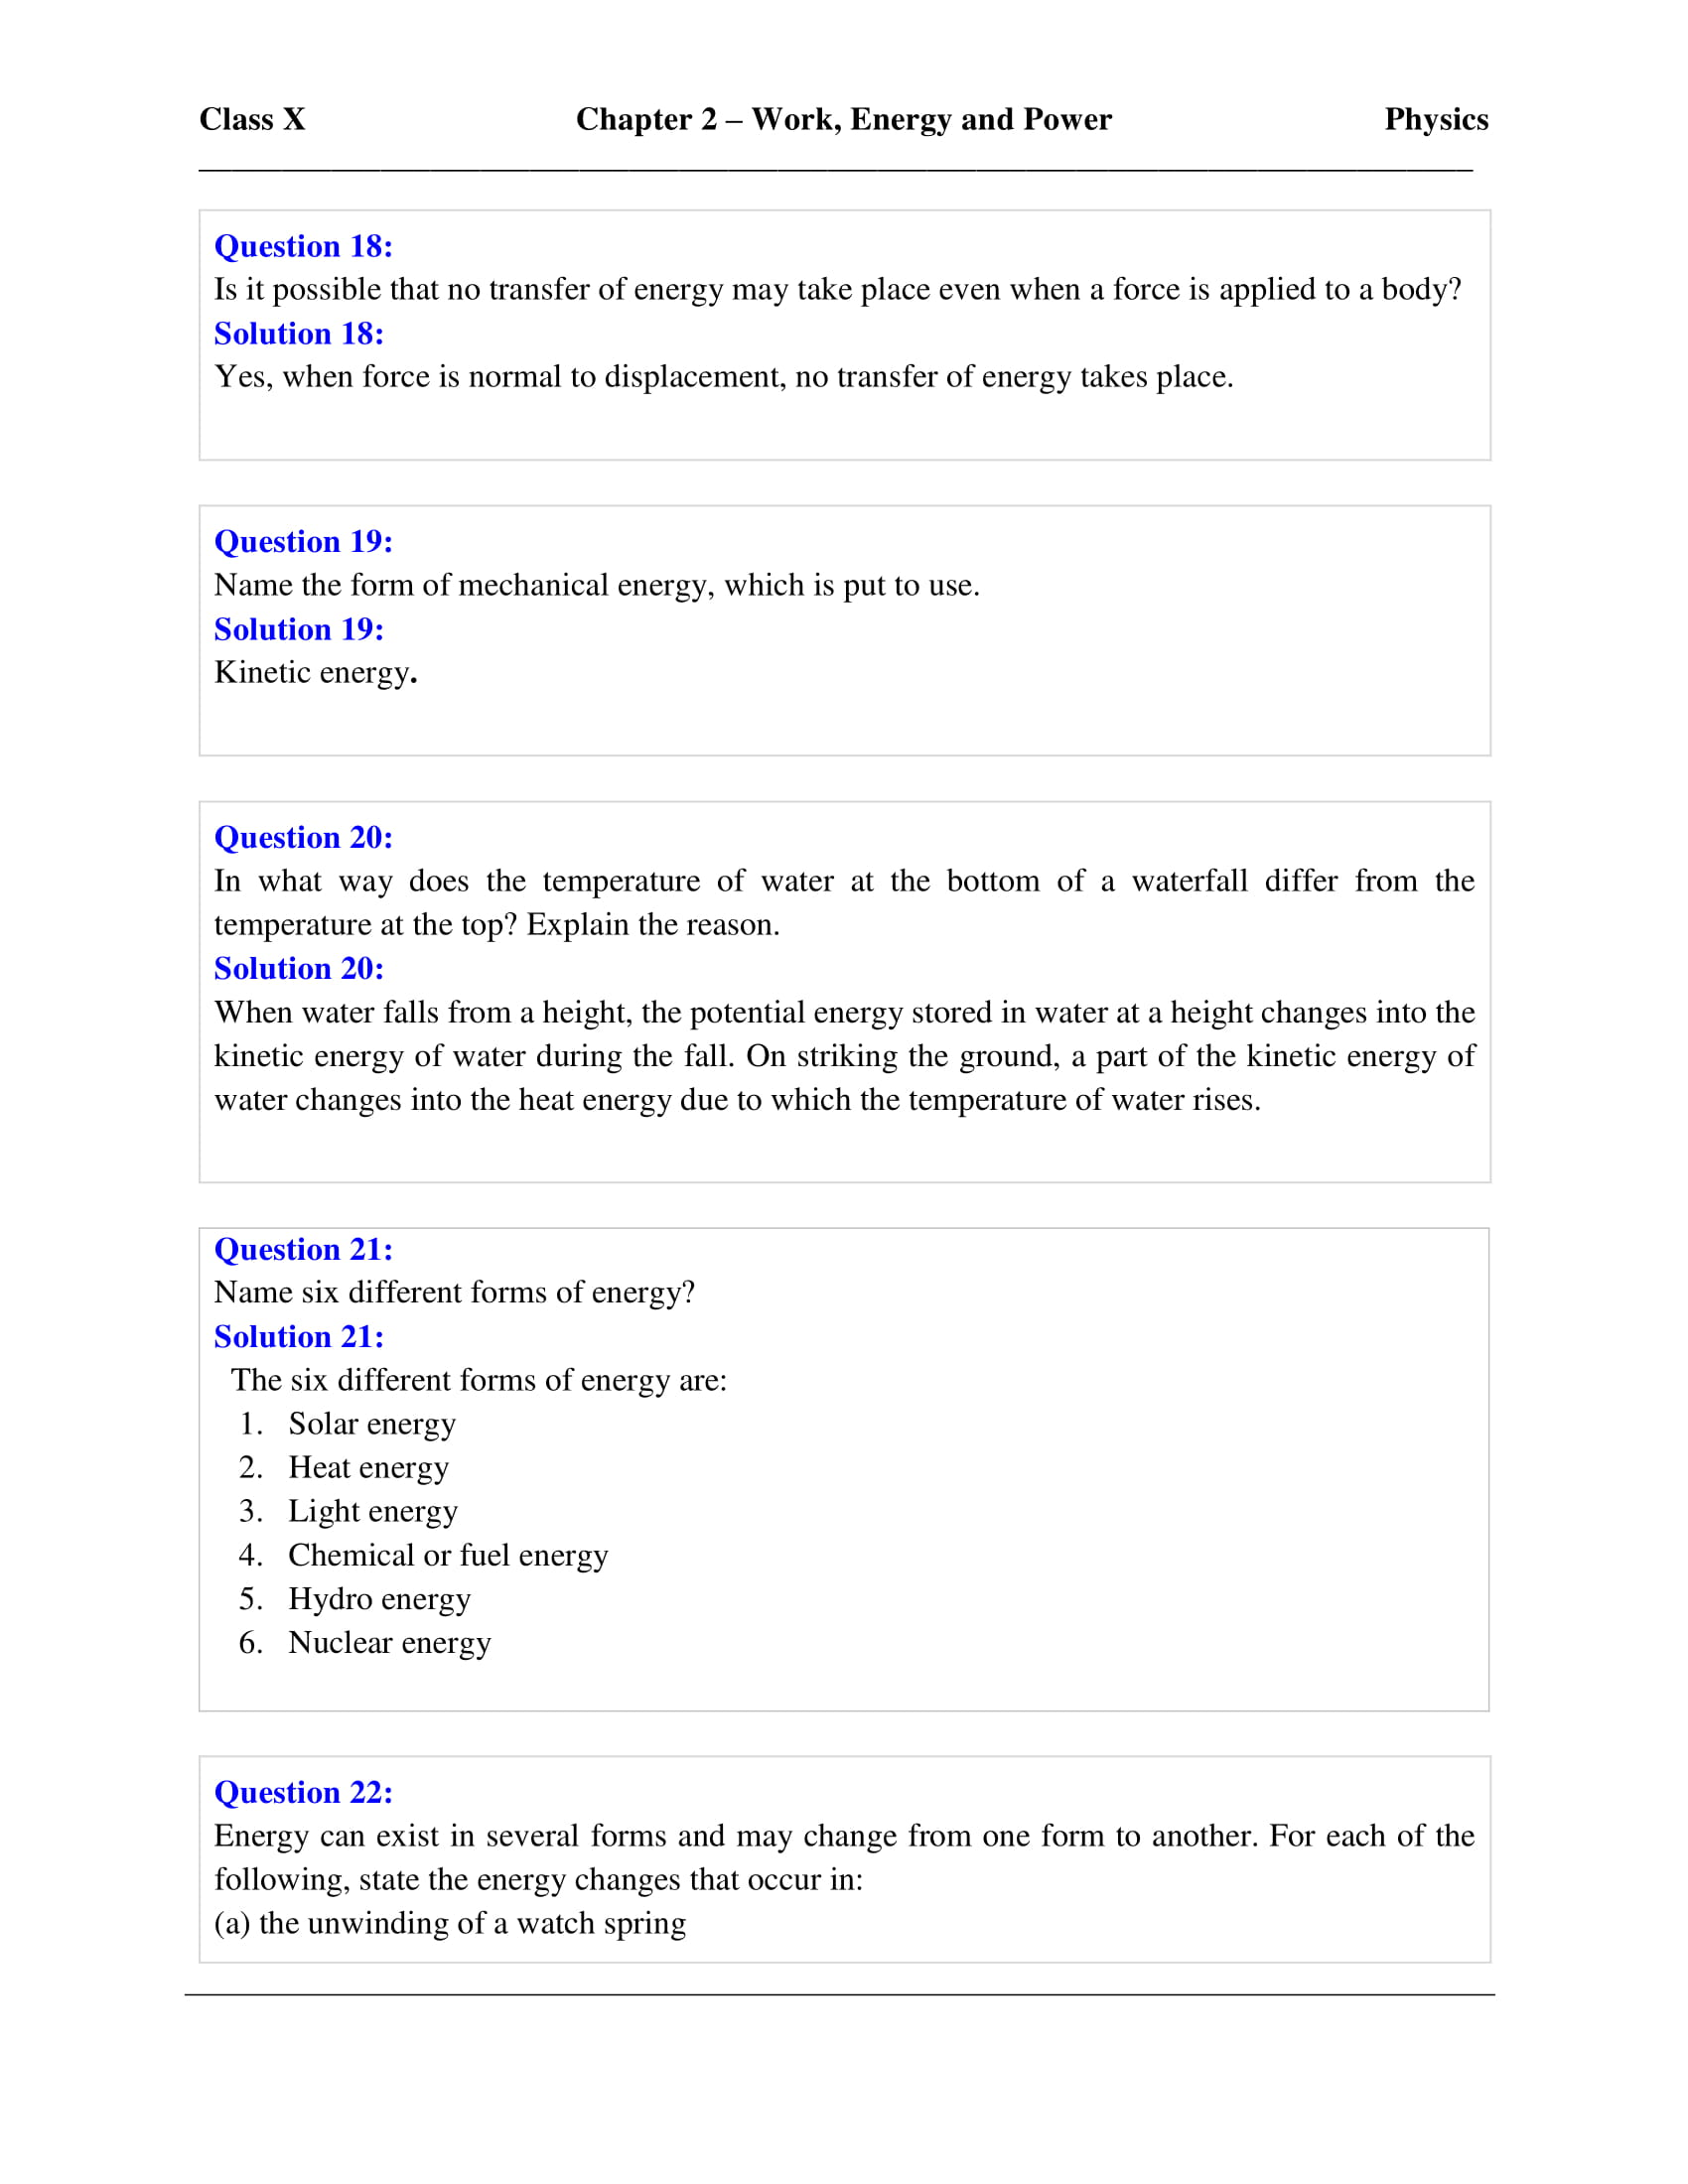 icse-selina-physics-solutions-class-10-chapter-2-work-energy-and-power-21